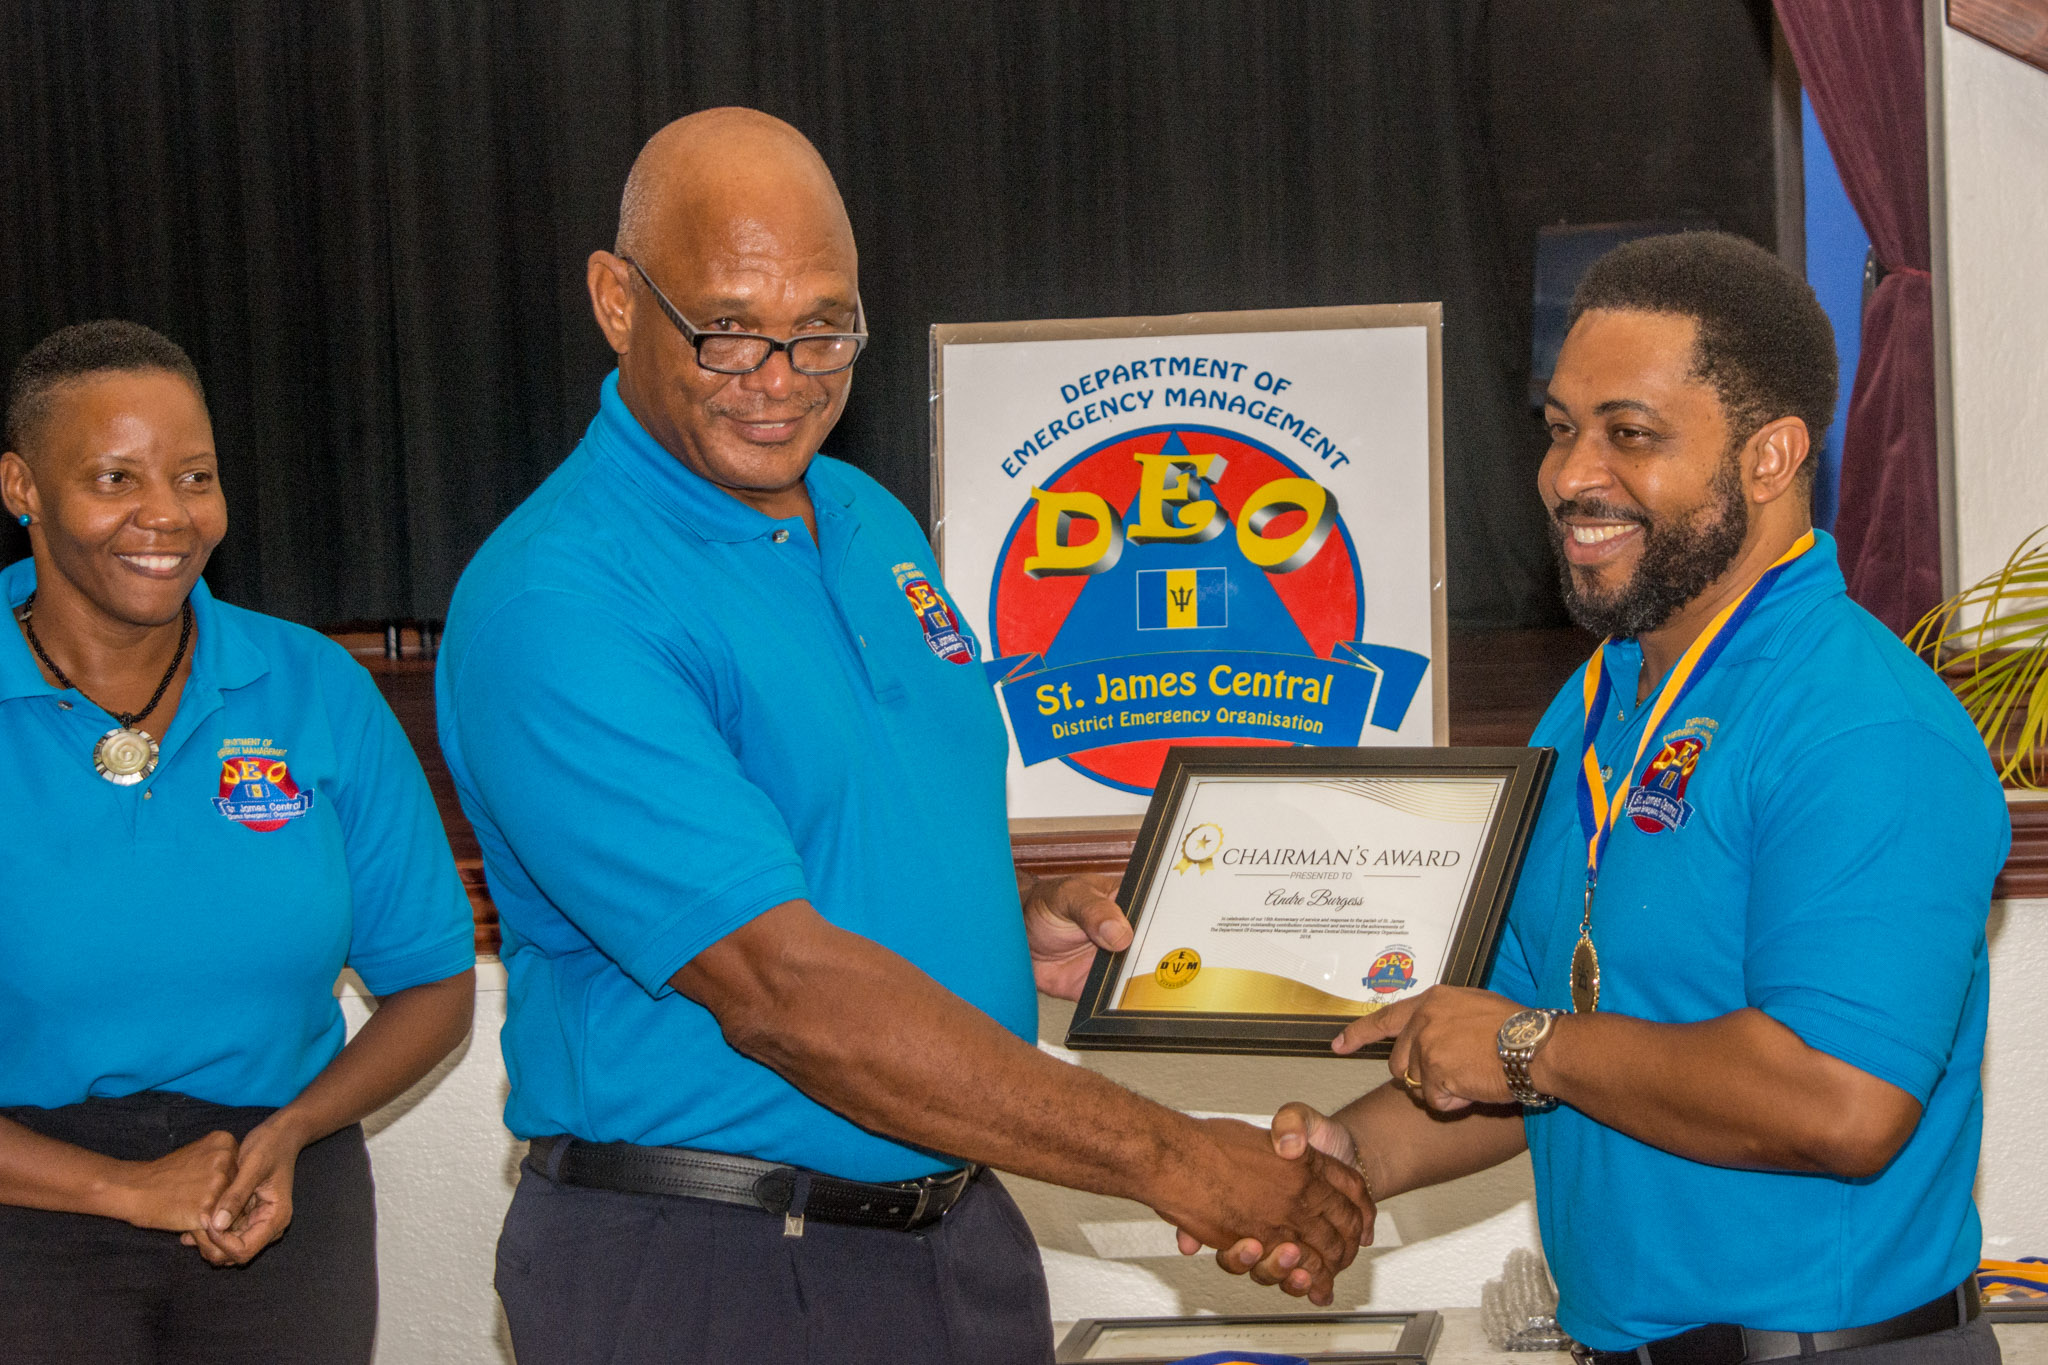 Andre Burgess receives the Chairman's Award